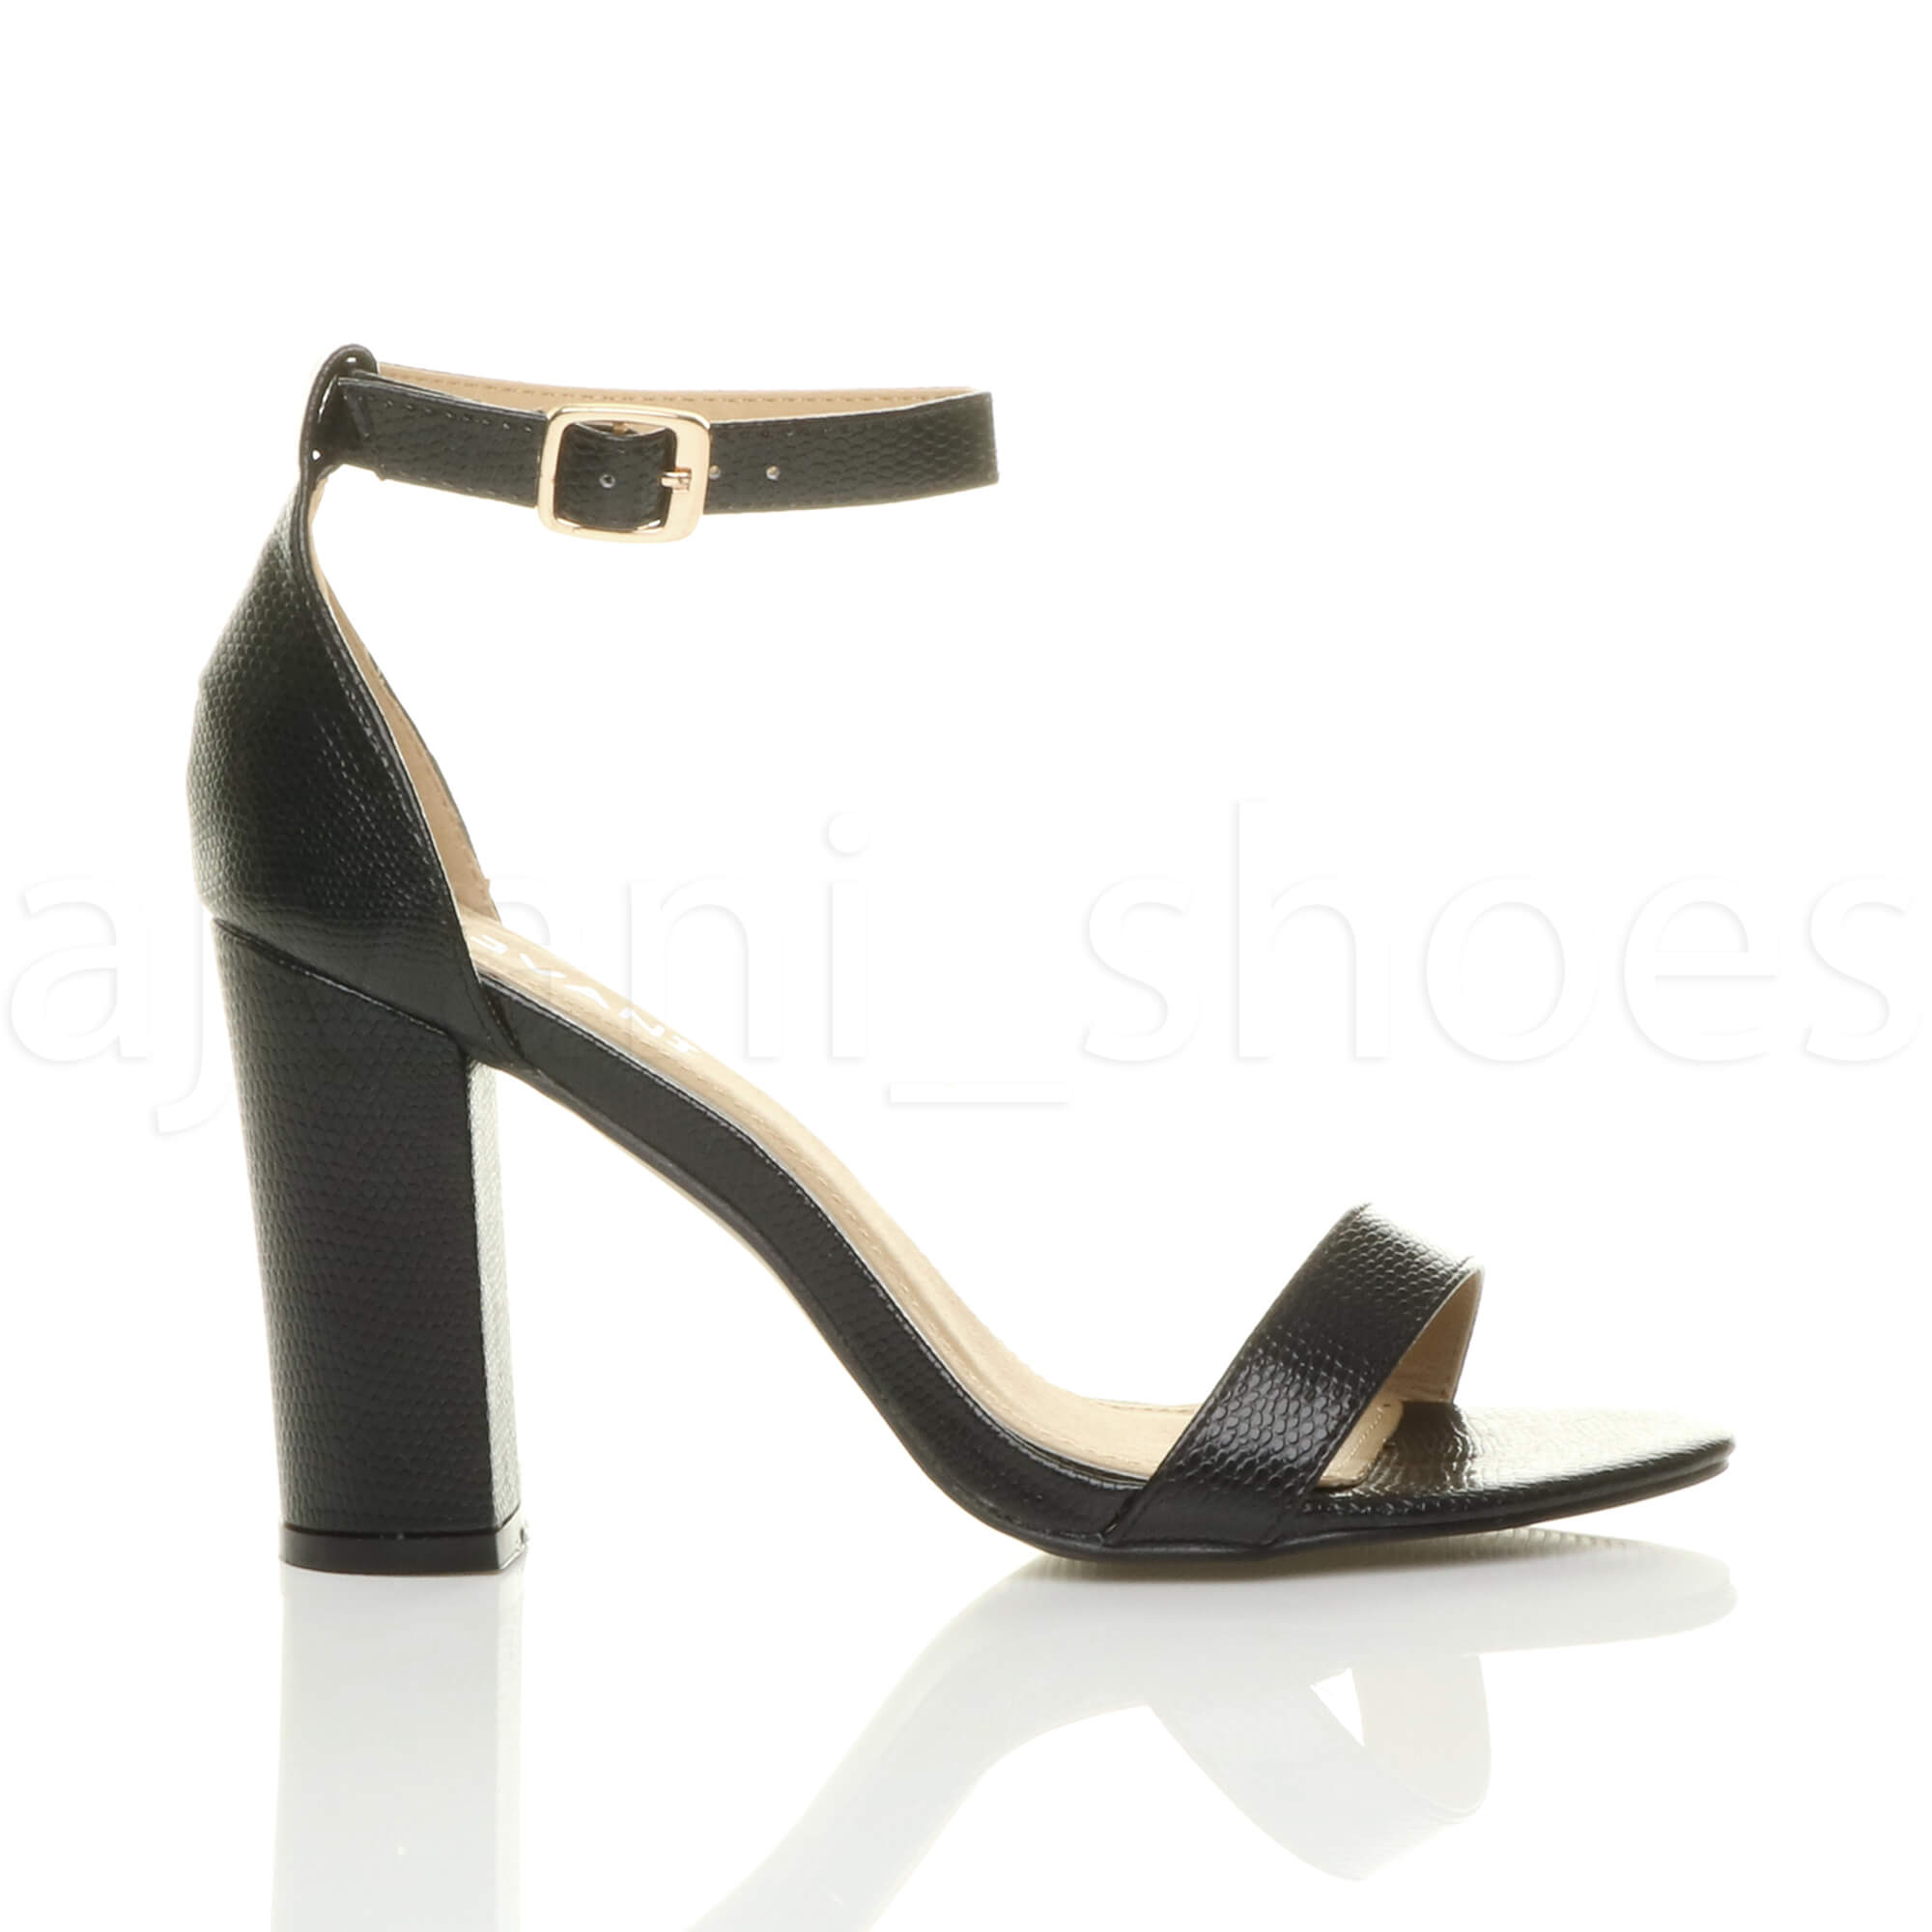 WOMENS-LADIES-BLOCK-HIGH-HEEL-ANKLE-STRAP-PEEP-TOE-STRAPPY-SANDALS-SHOES-SIZE thumbnail 10